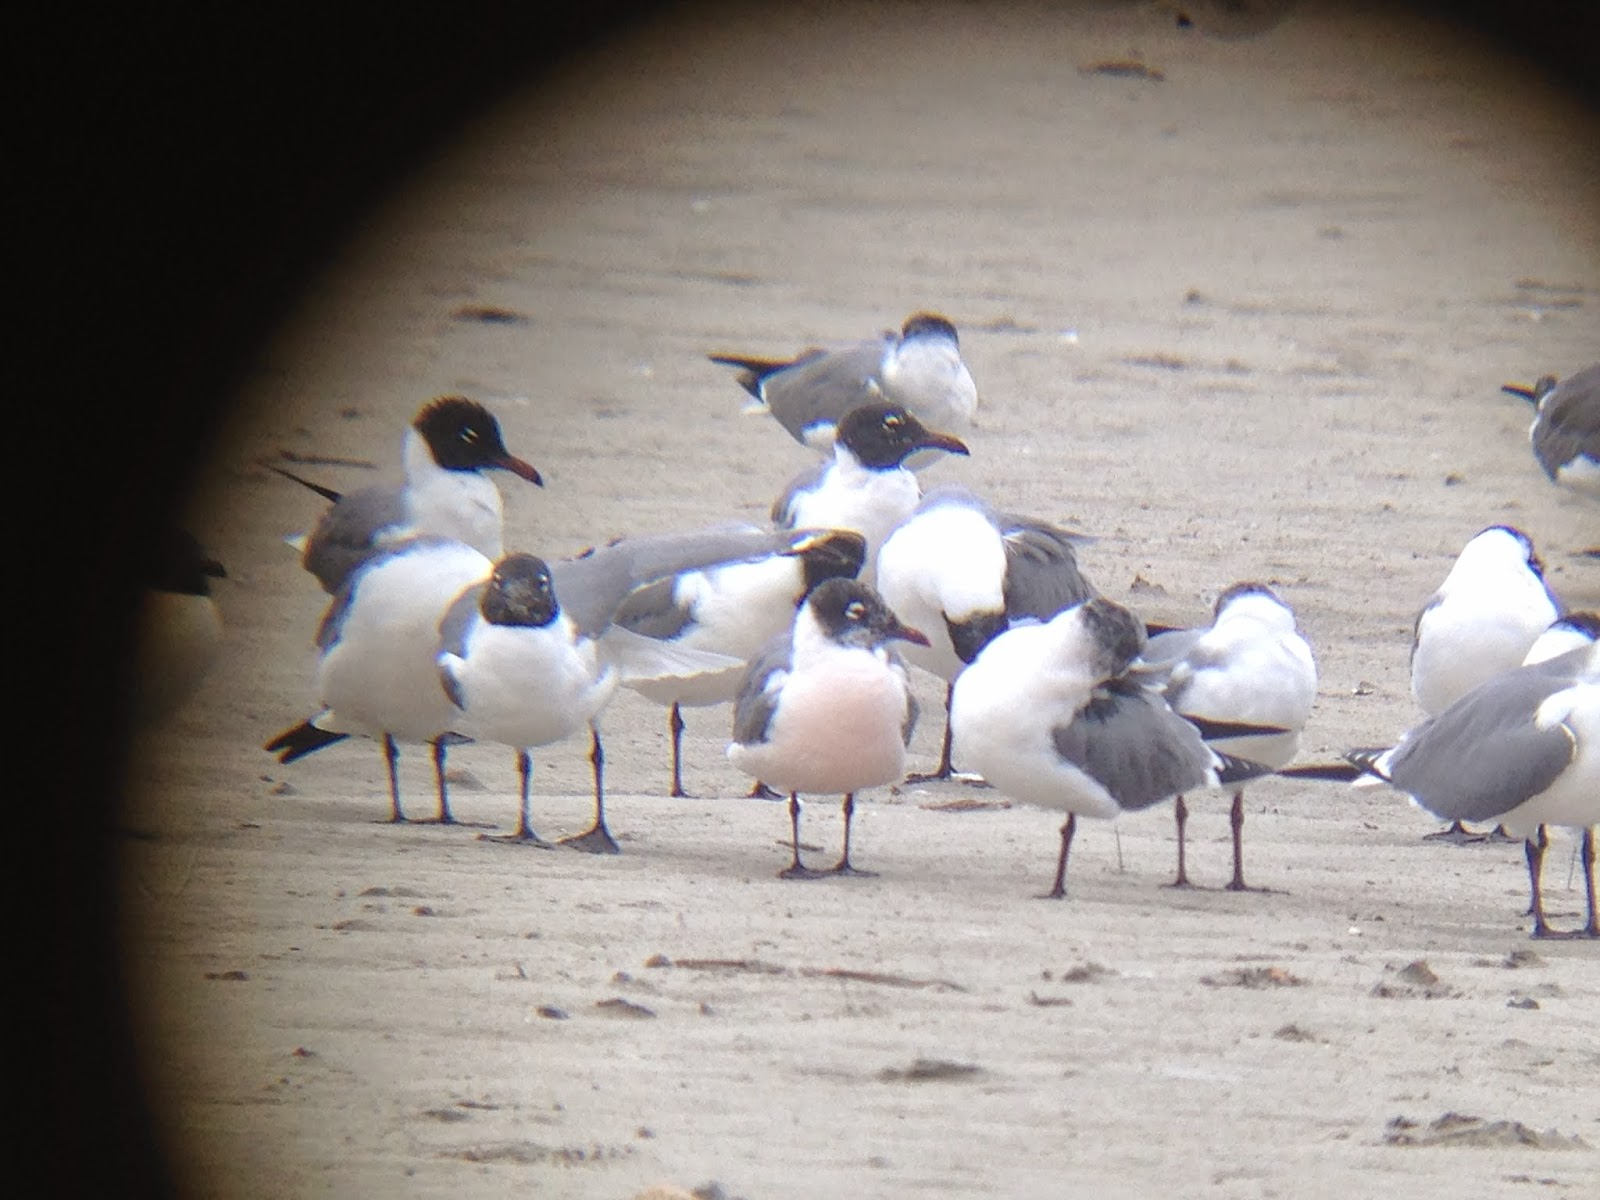 Digiscope image of a pink breasted Laughing Gull